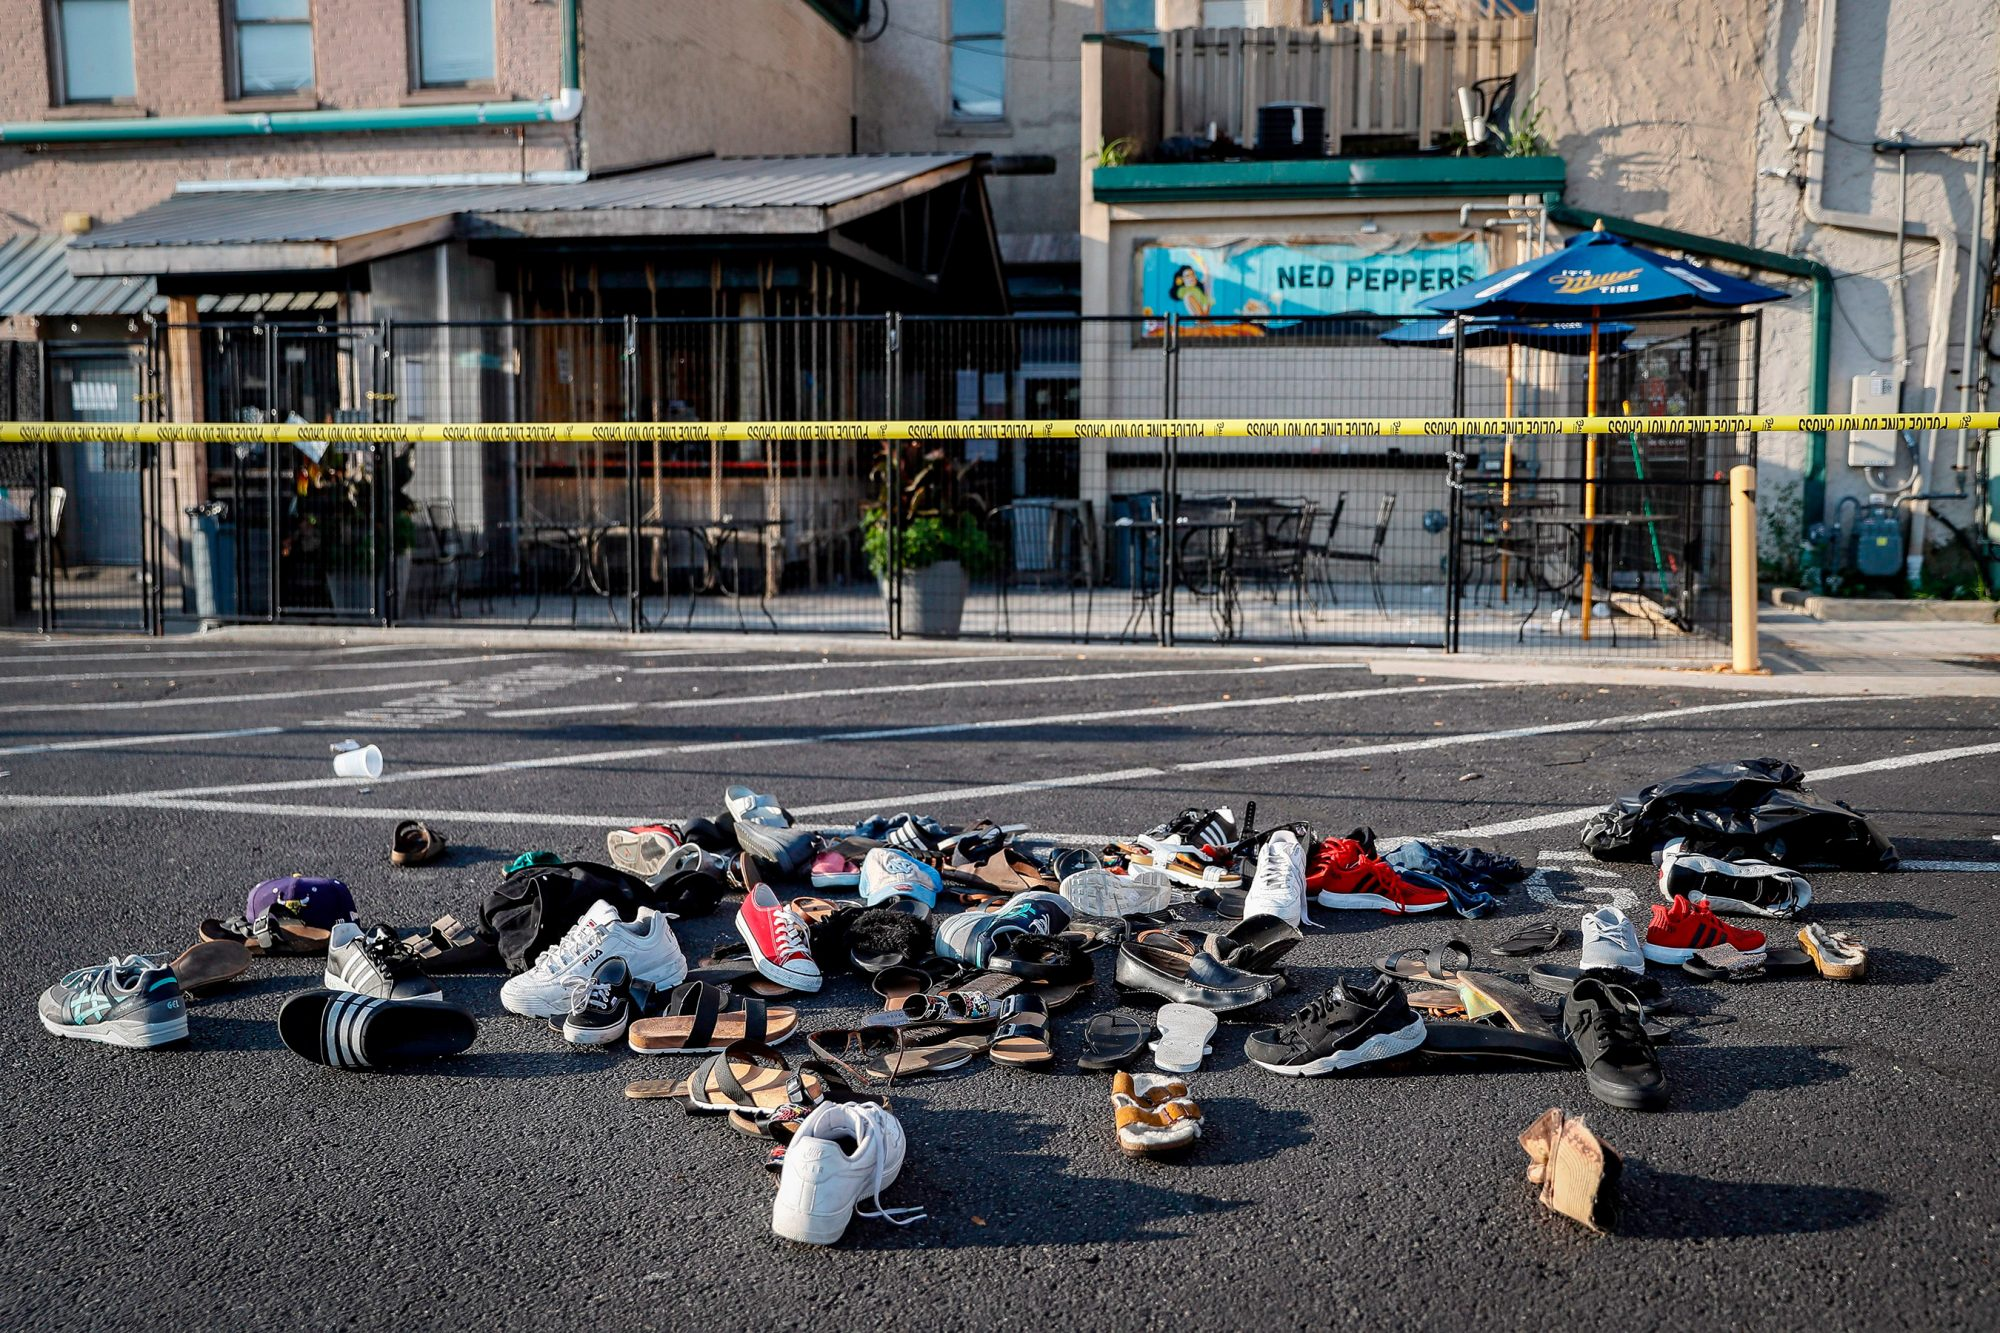 Shoes are piled outside the scene of a mass shooting including Ned Peppers bar, in Dayton, Ohio